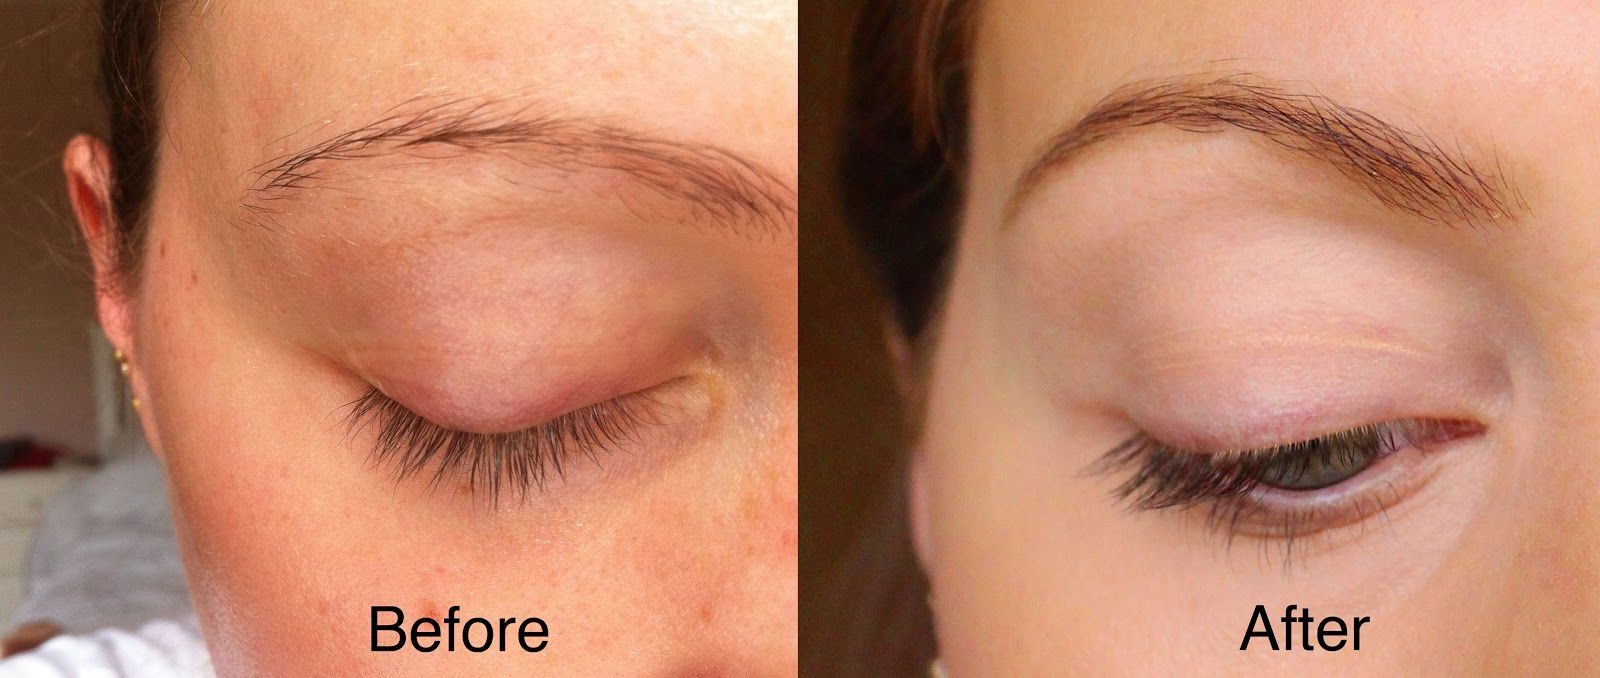 How To Dye Tint Your Eyelashes Eylure Tutorial The Services That I